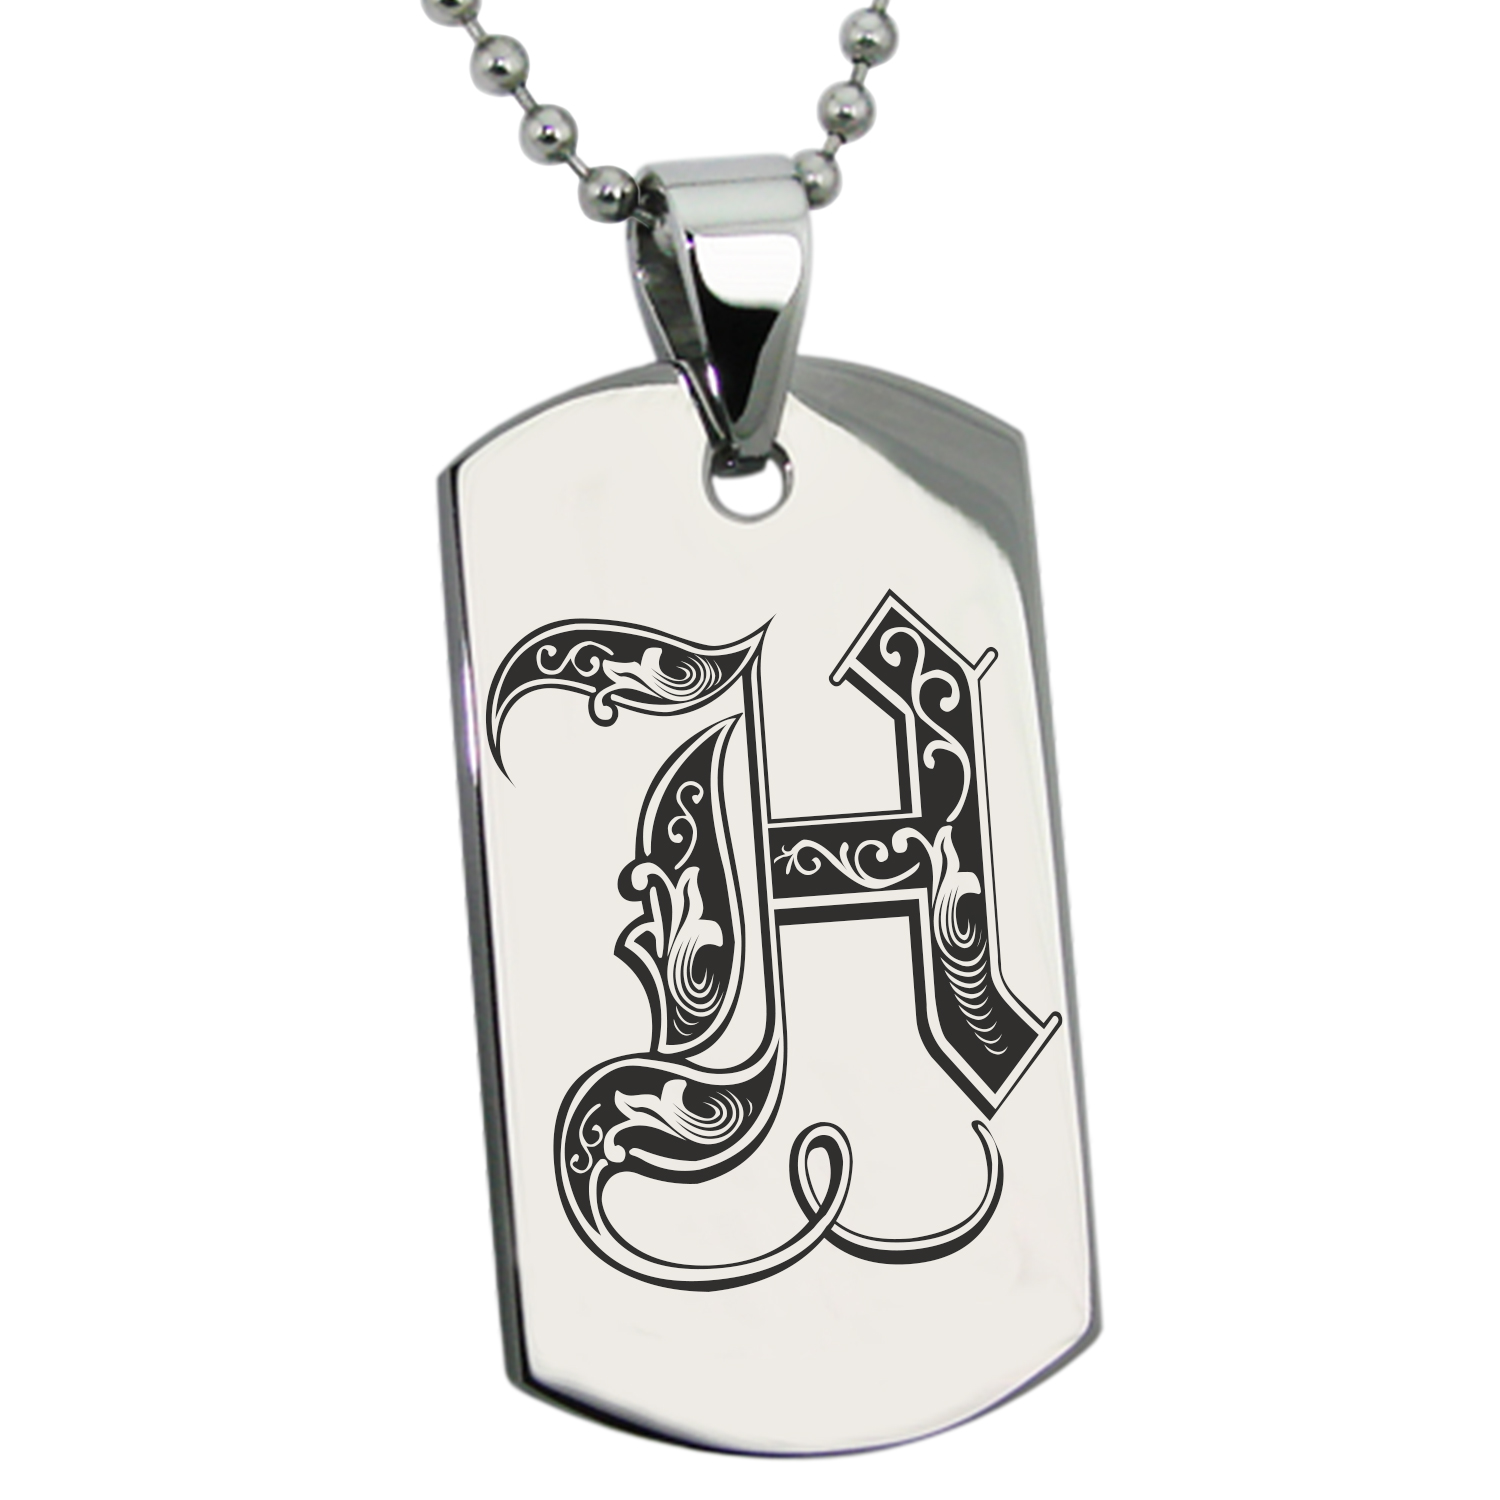 Stainless Steel Letter H Initial Royal Monogram Engraved Dog Tag Pendant